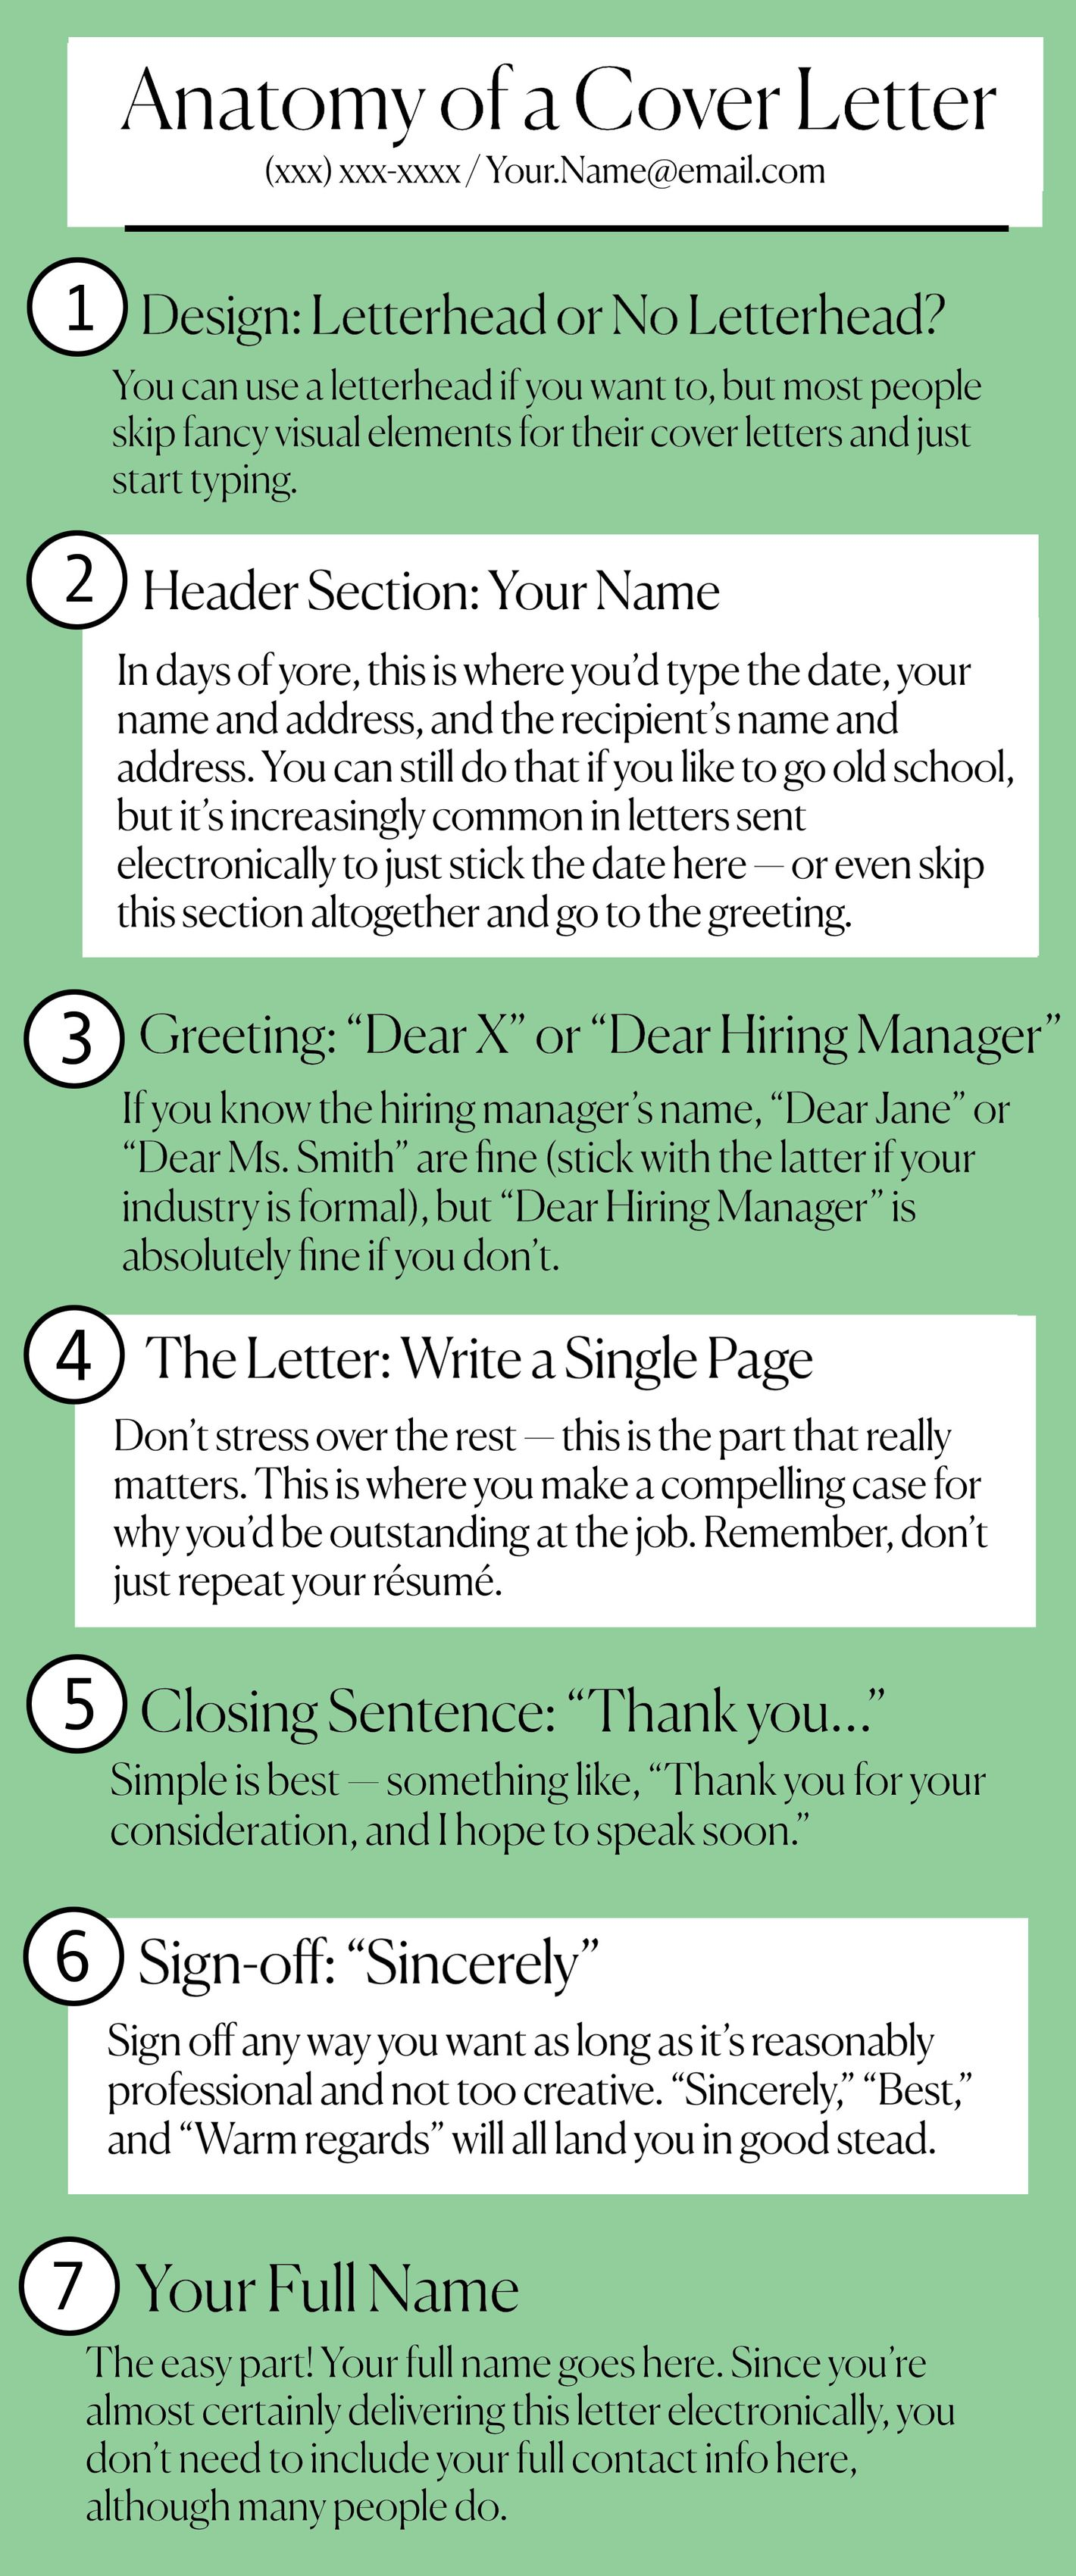 How to Write a Cover Letter - Step-by-Step Tips & Examples